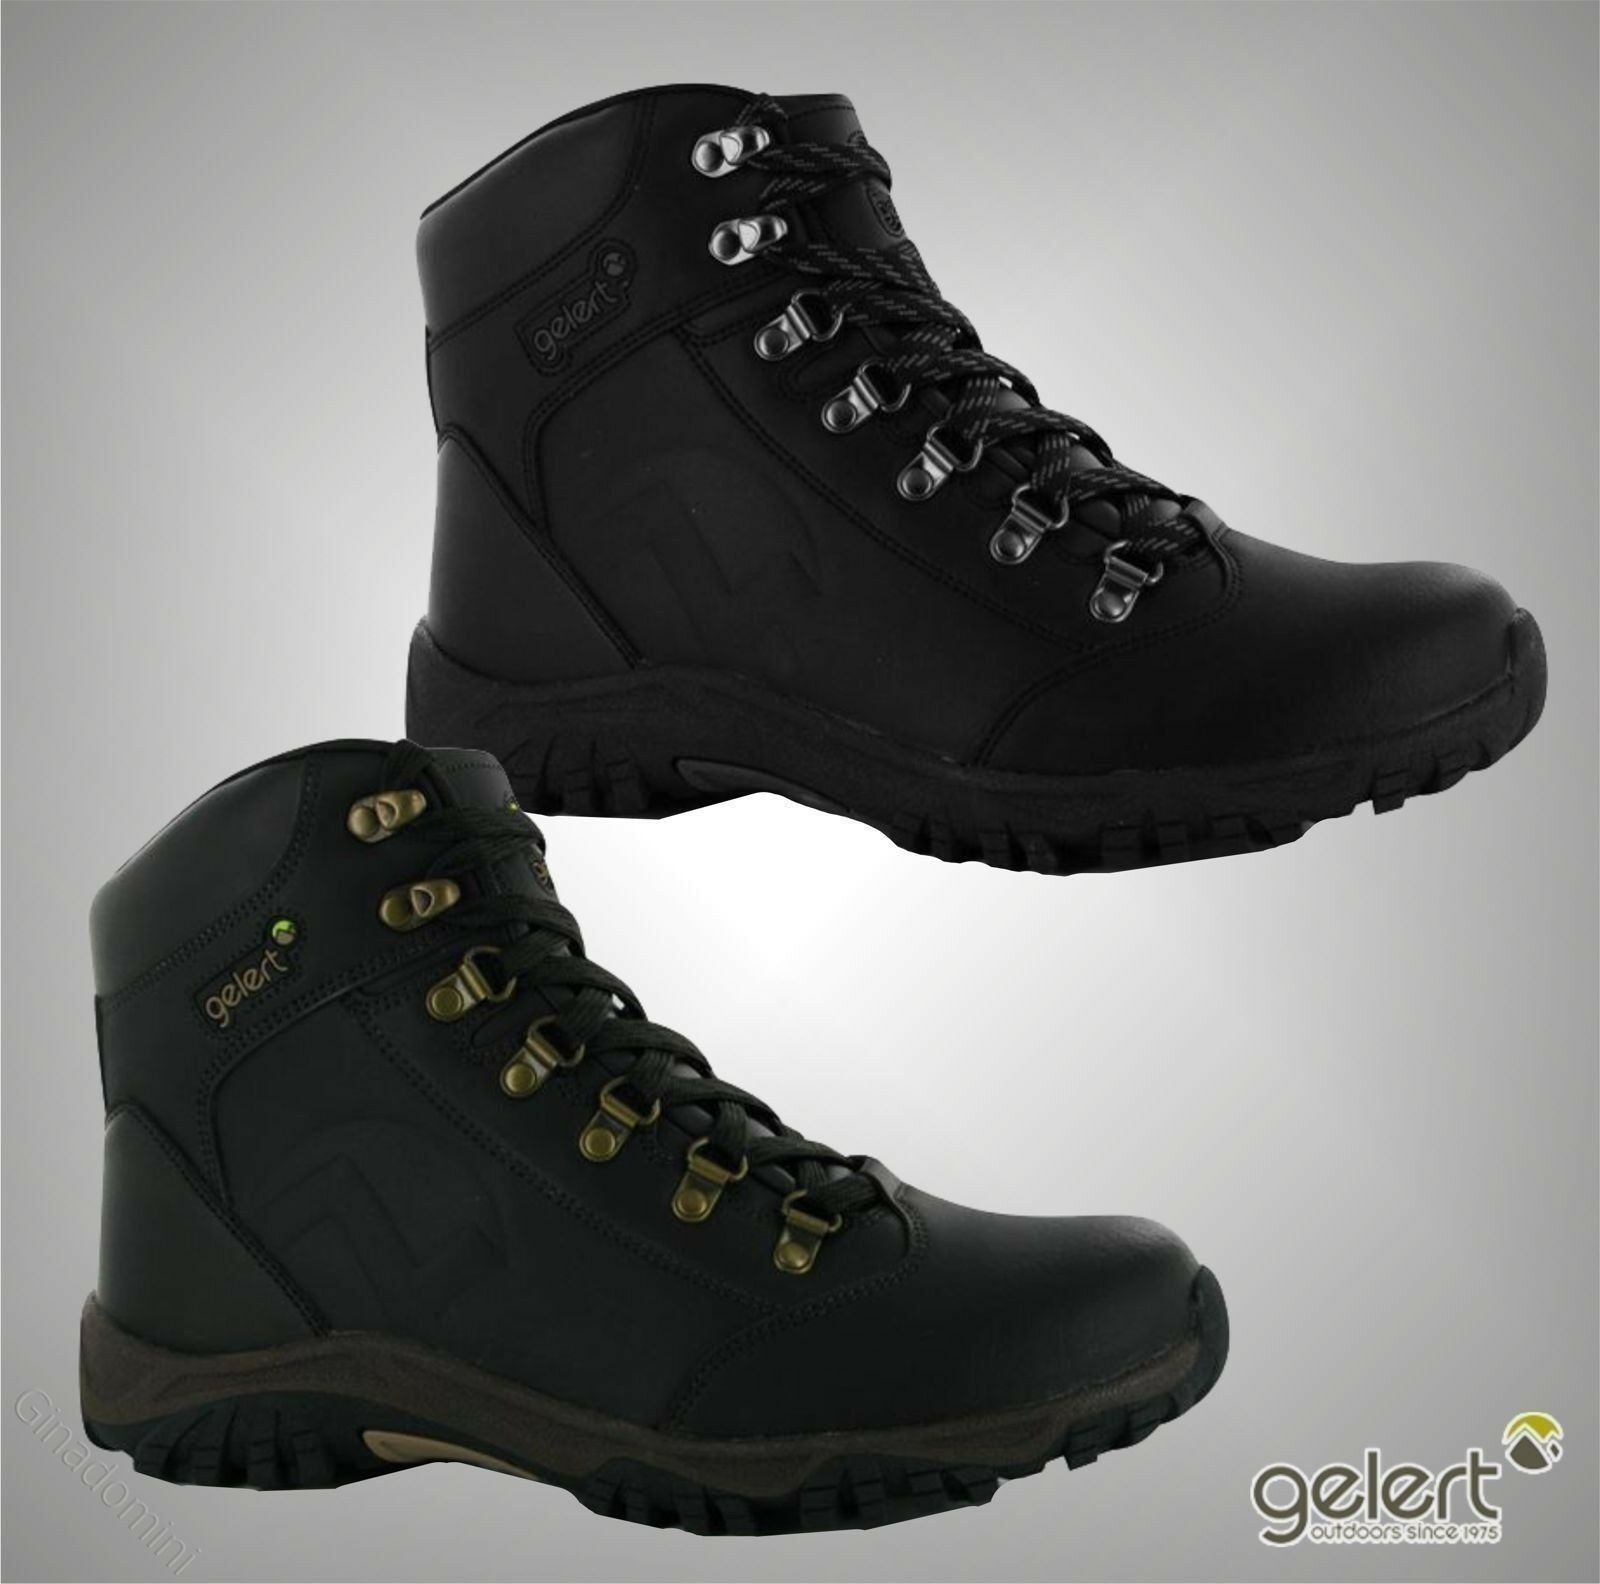 New Mens Branded Gelert Lace-Up Leather Walking Boots Outdoor Footwear Size 7-13